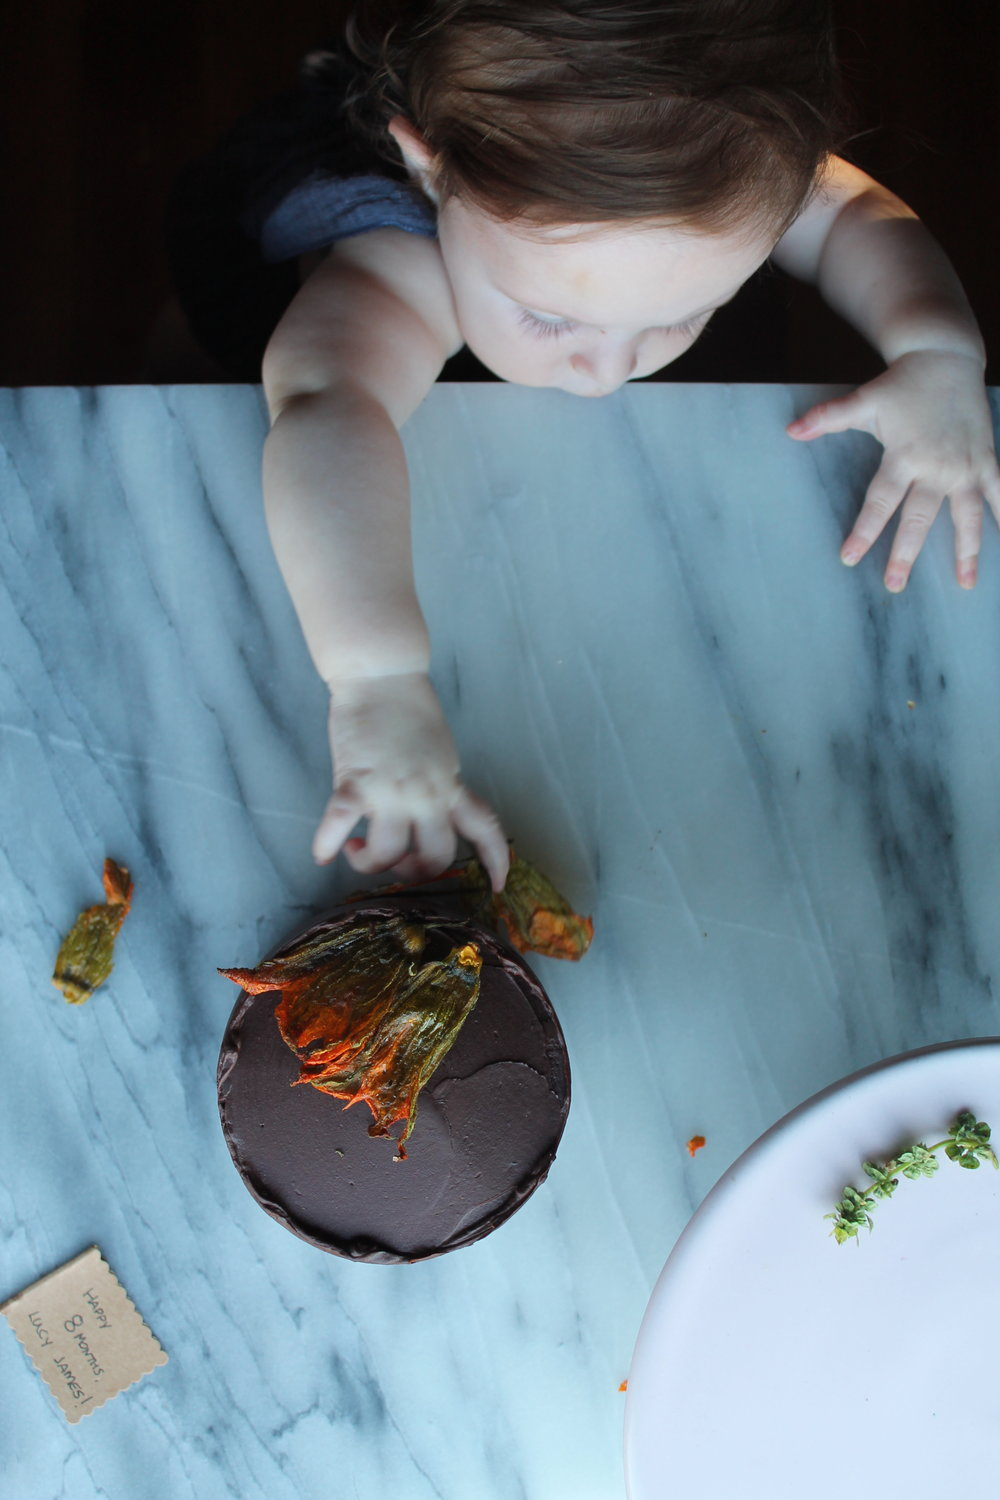 Chocolate Zucchini Baby Cake Idea for Baby's First Birthday